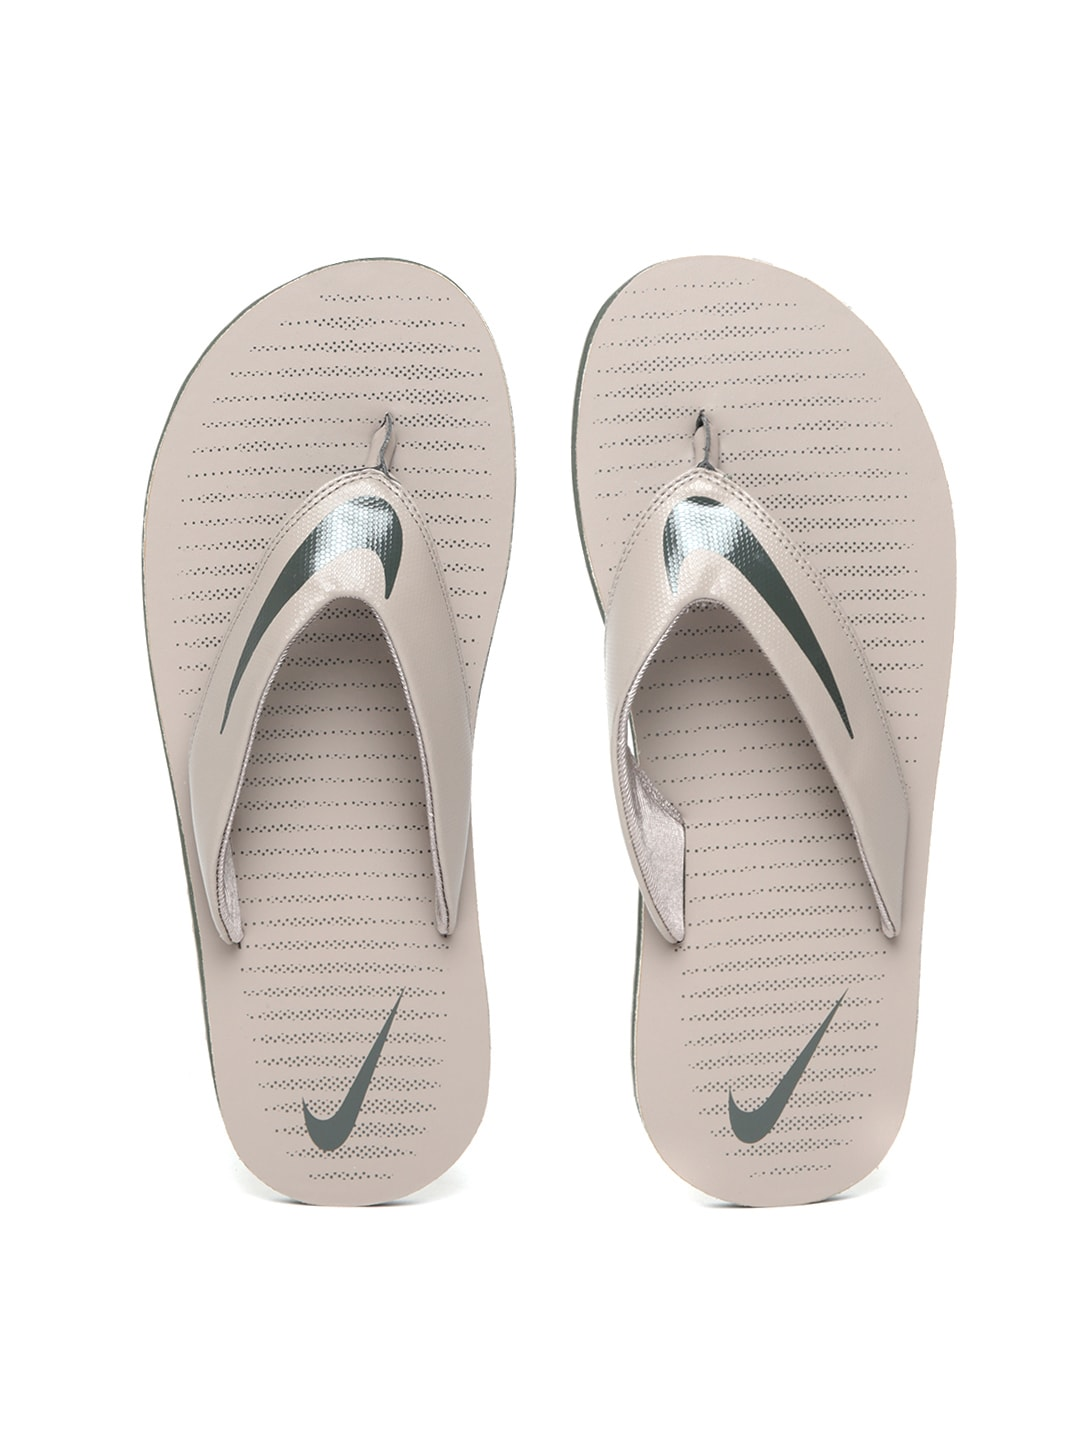 c63d5501a44c Nike Chroma Thong Flip Flops - Buy Nike Chroma Thong Flip Flops online in  India